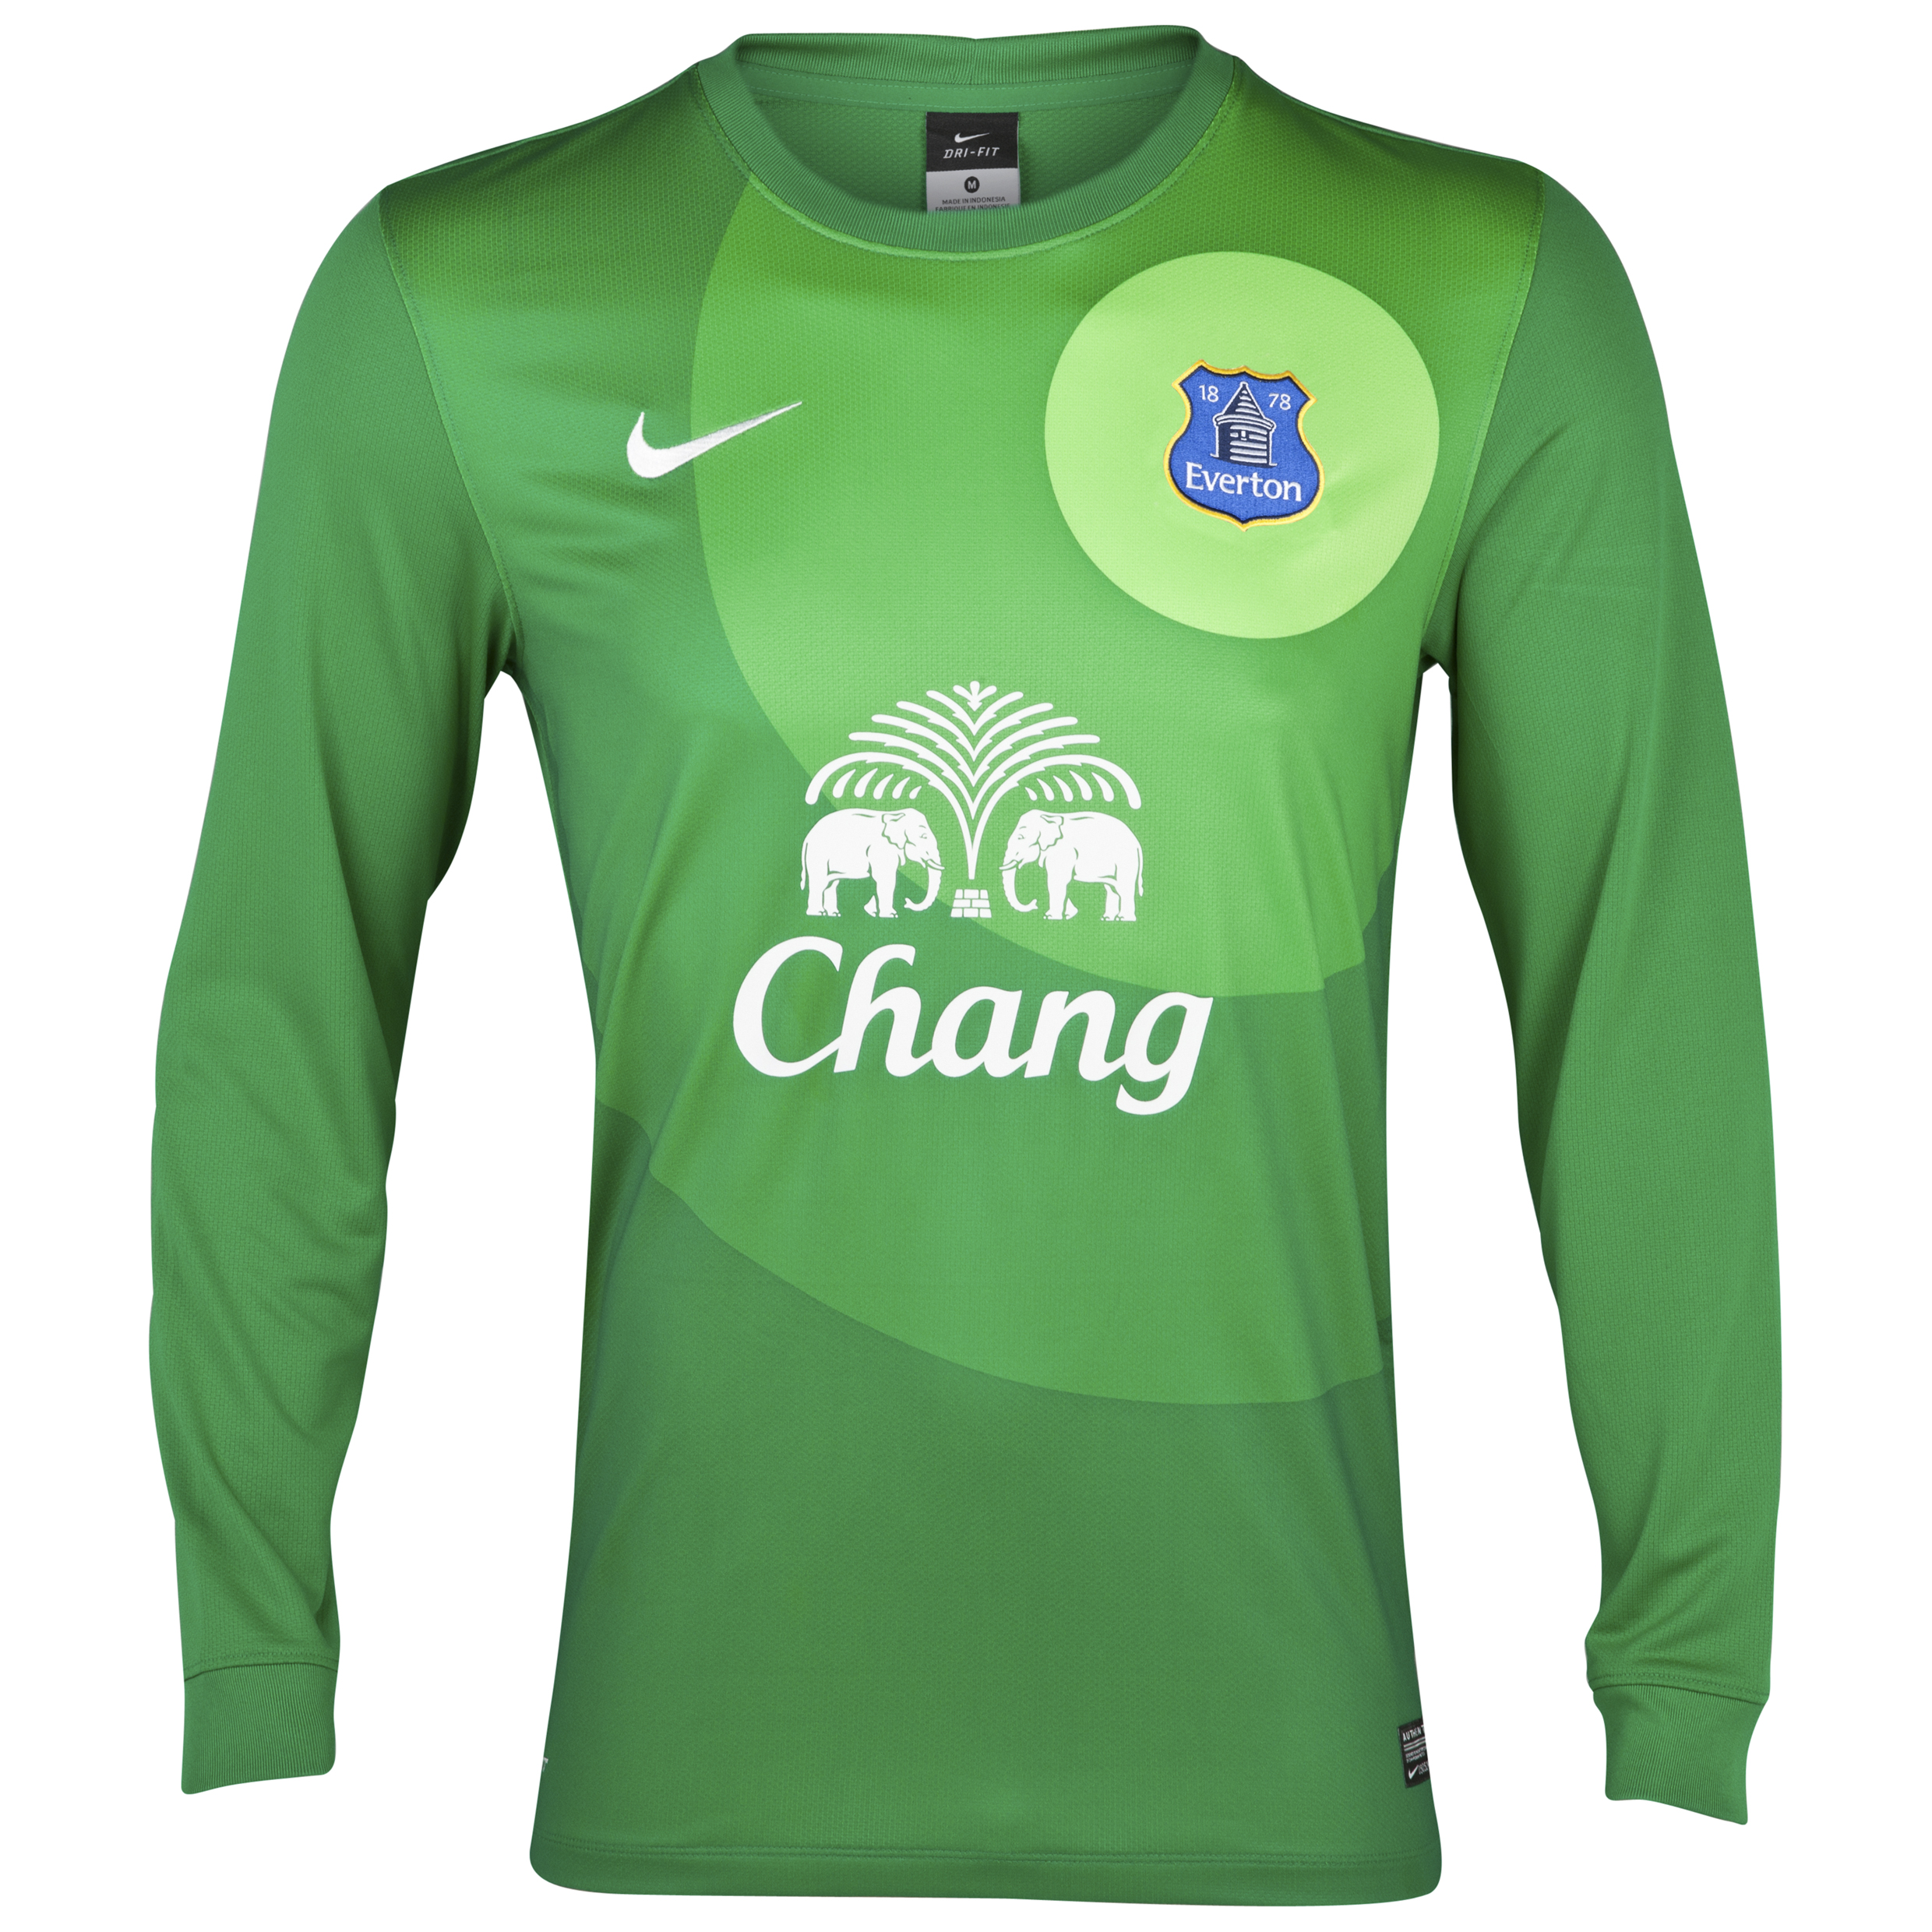 Everton Away Goalkeeper Shirt 2013/14